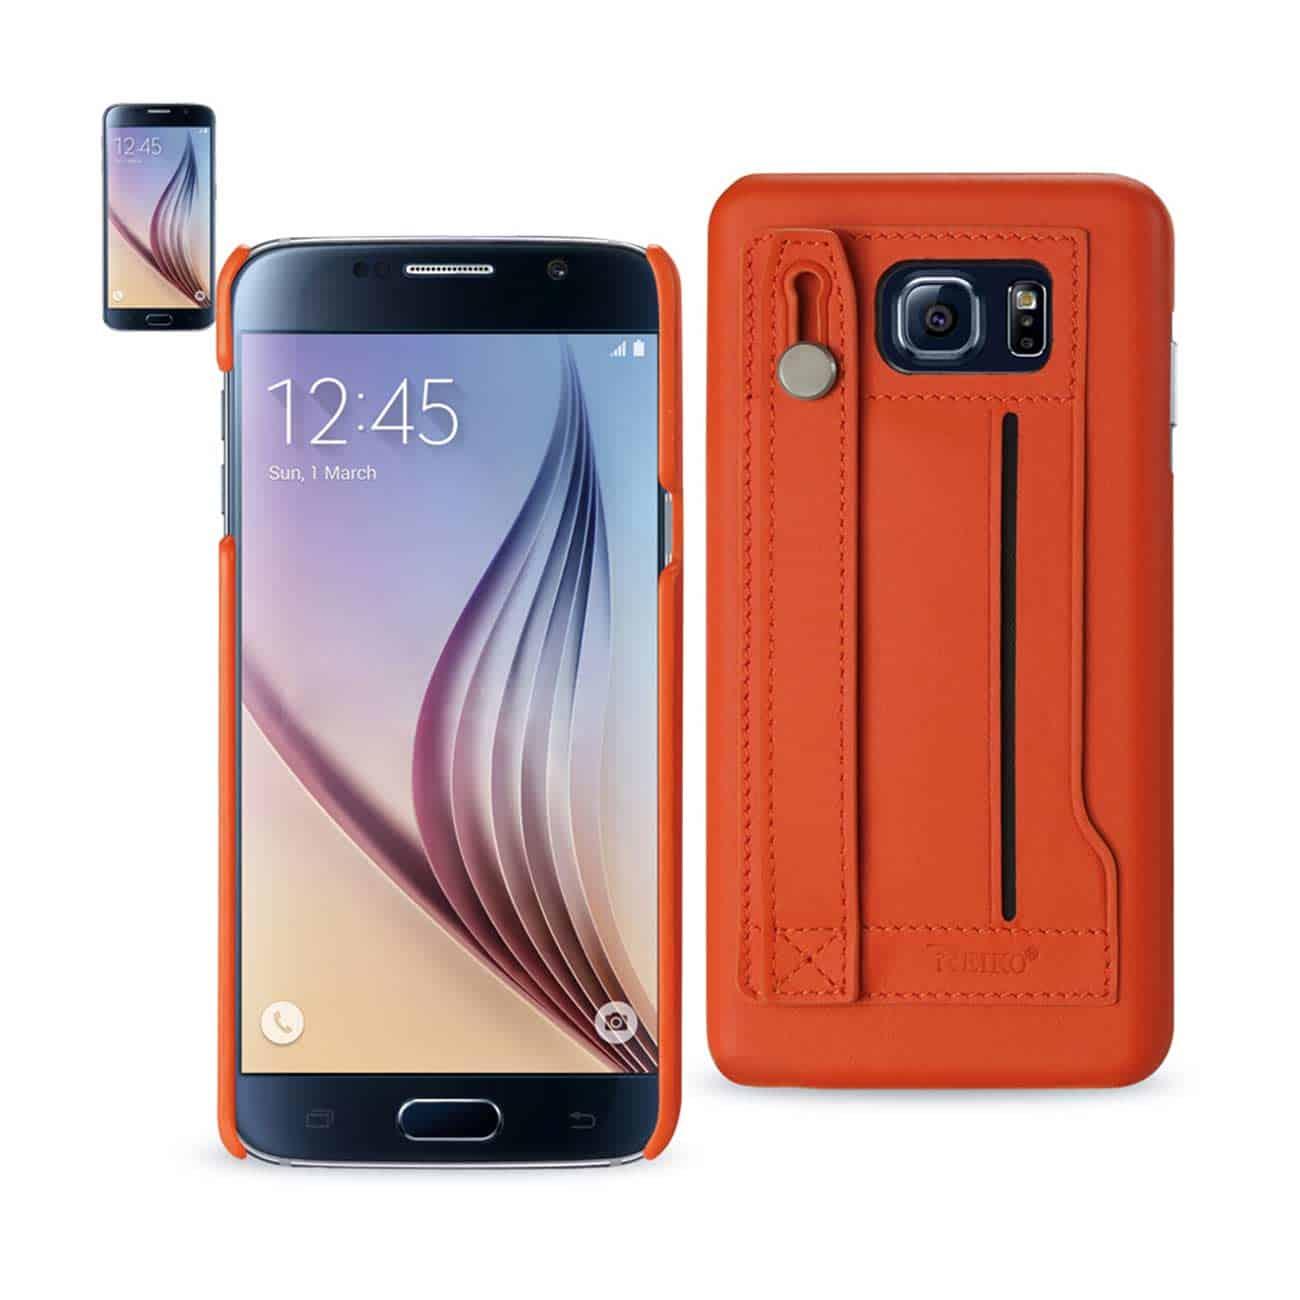 SAMSUNG GALAXY S6 GENUINE LEATHER HAND STRAP CASE IN TANGERINE